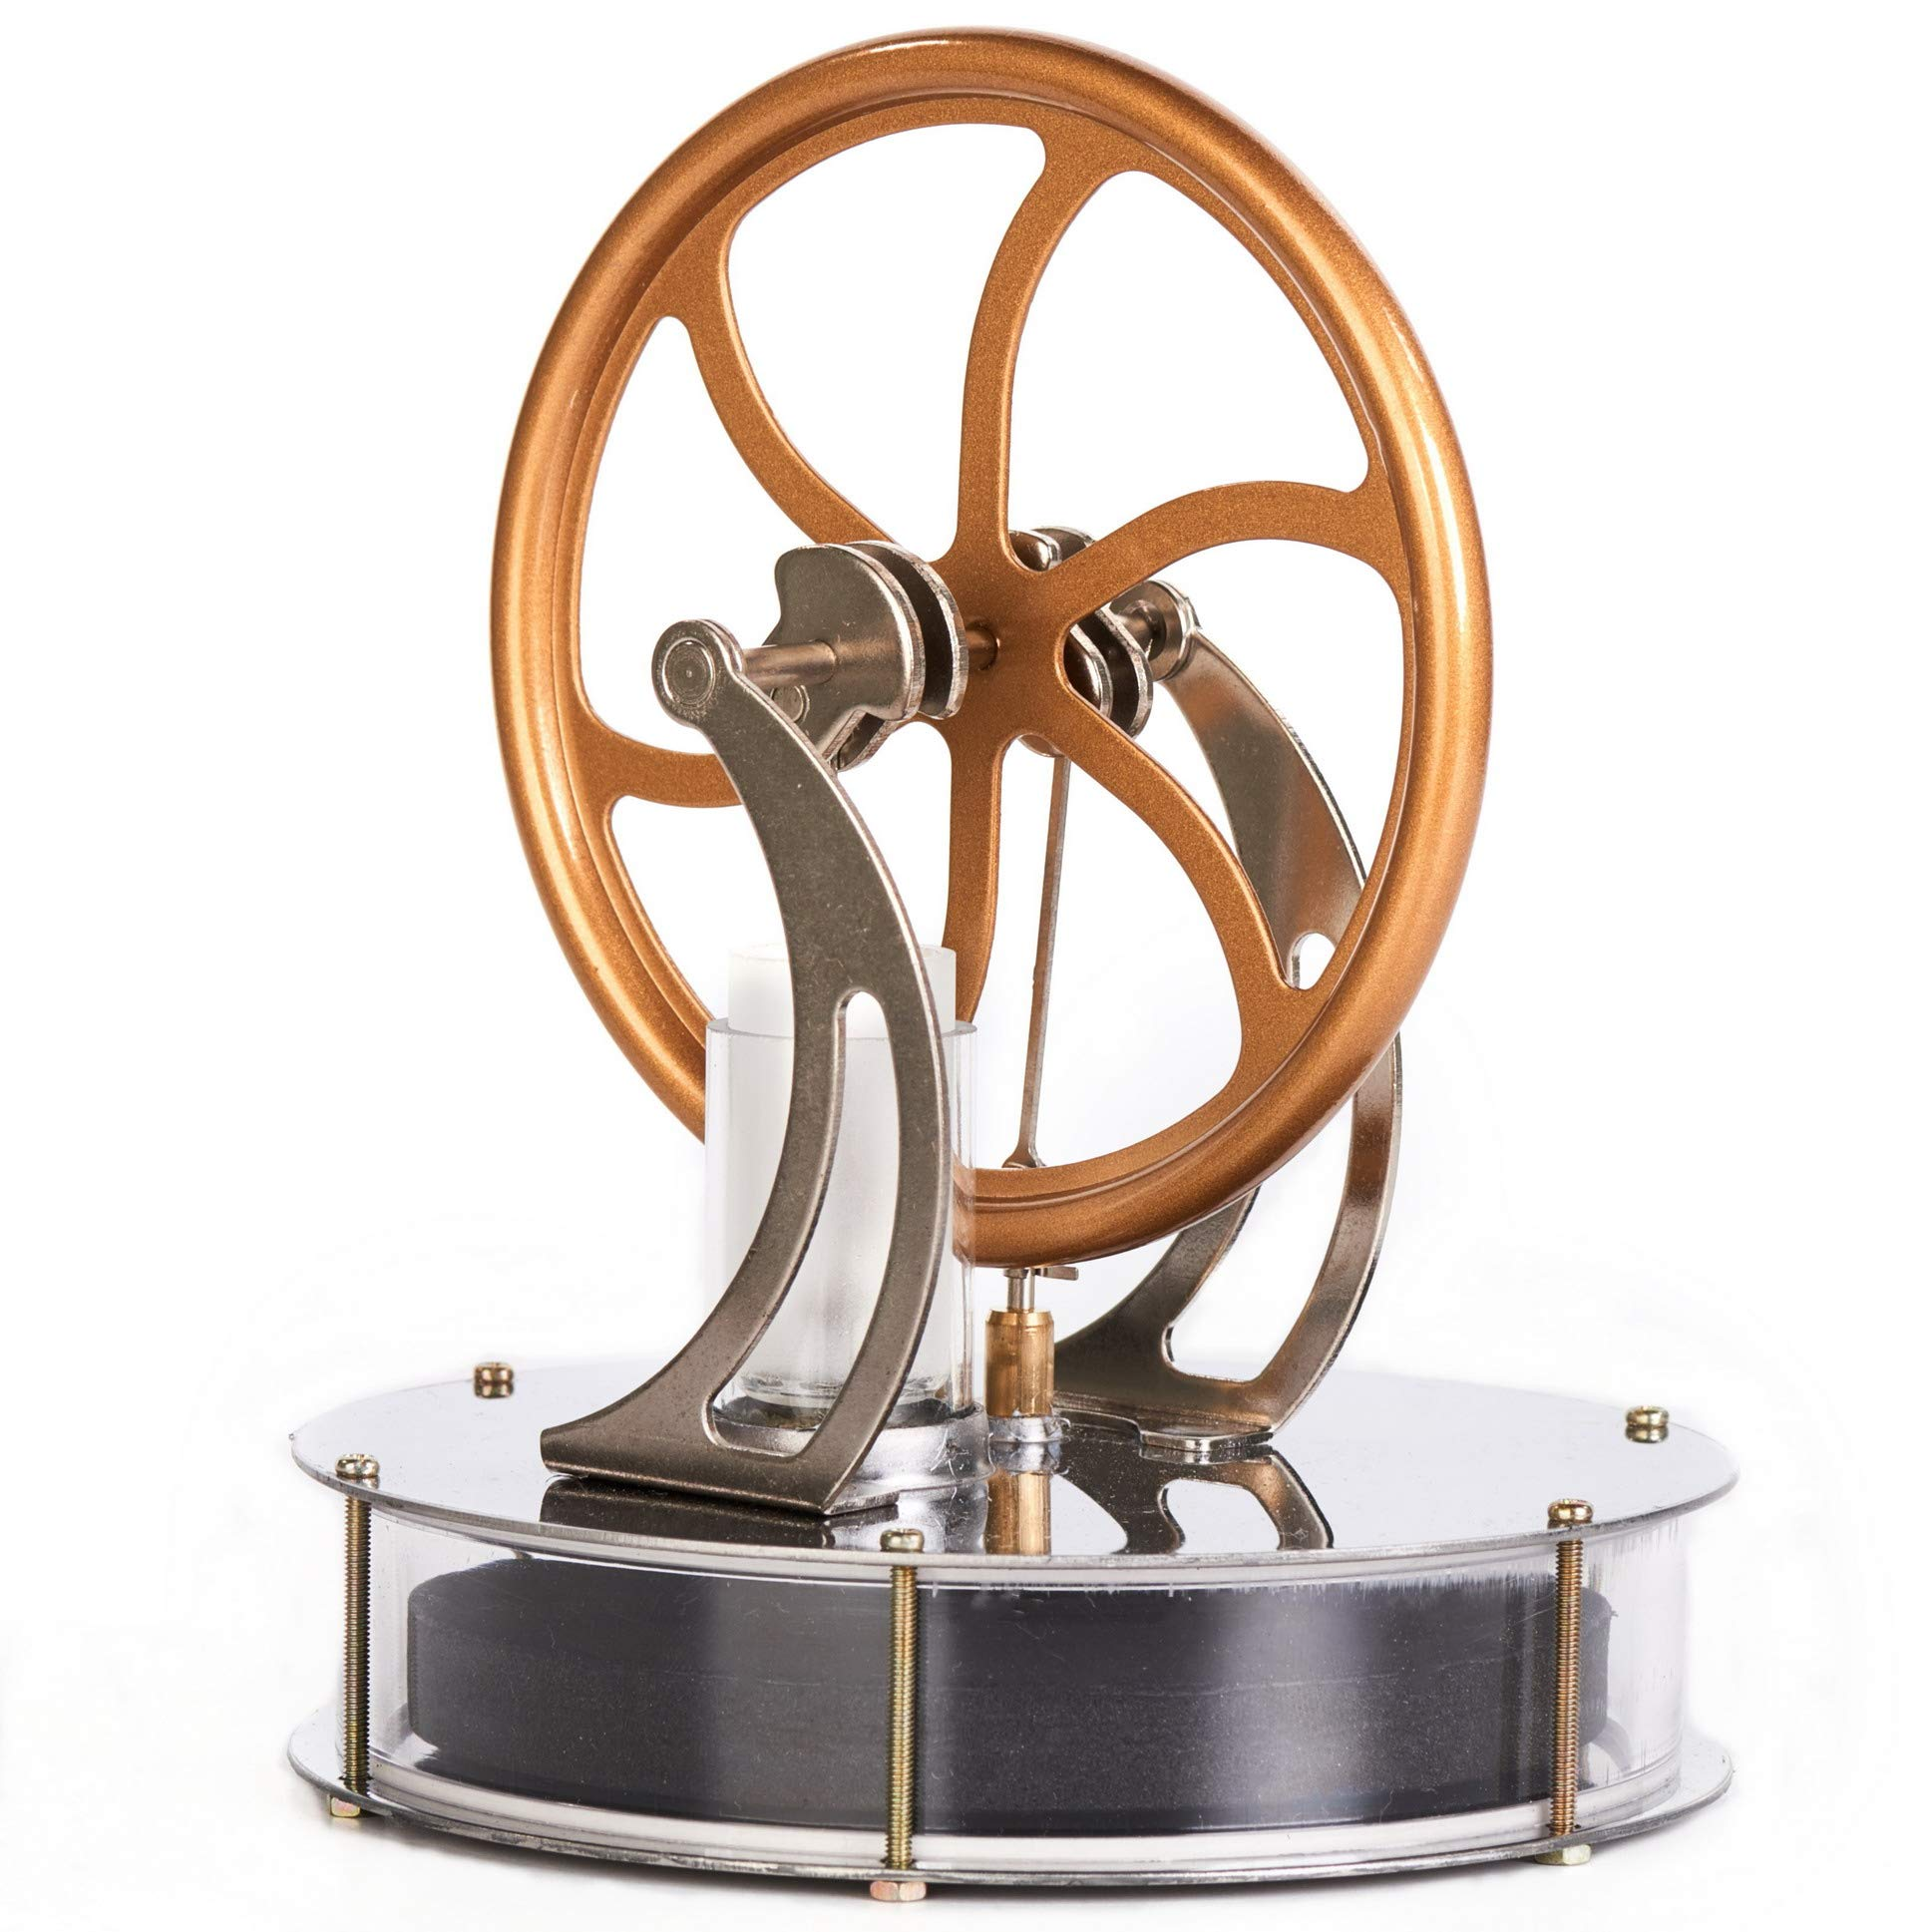 Sunnytech Low Temperature Stirling Engine Motor Steam Heat Education Model Toy Kit (LT001) by Sunnytech (Image #1)